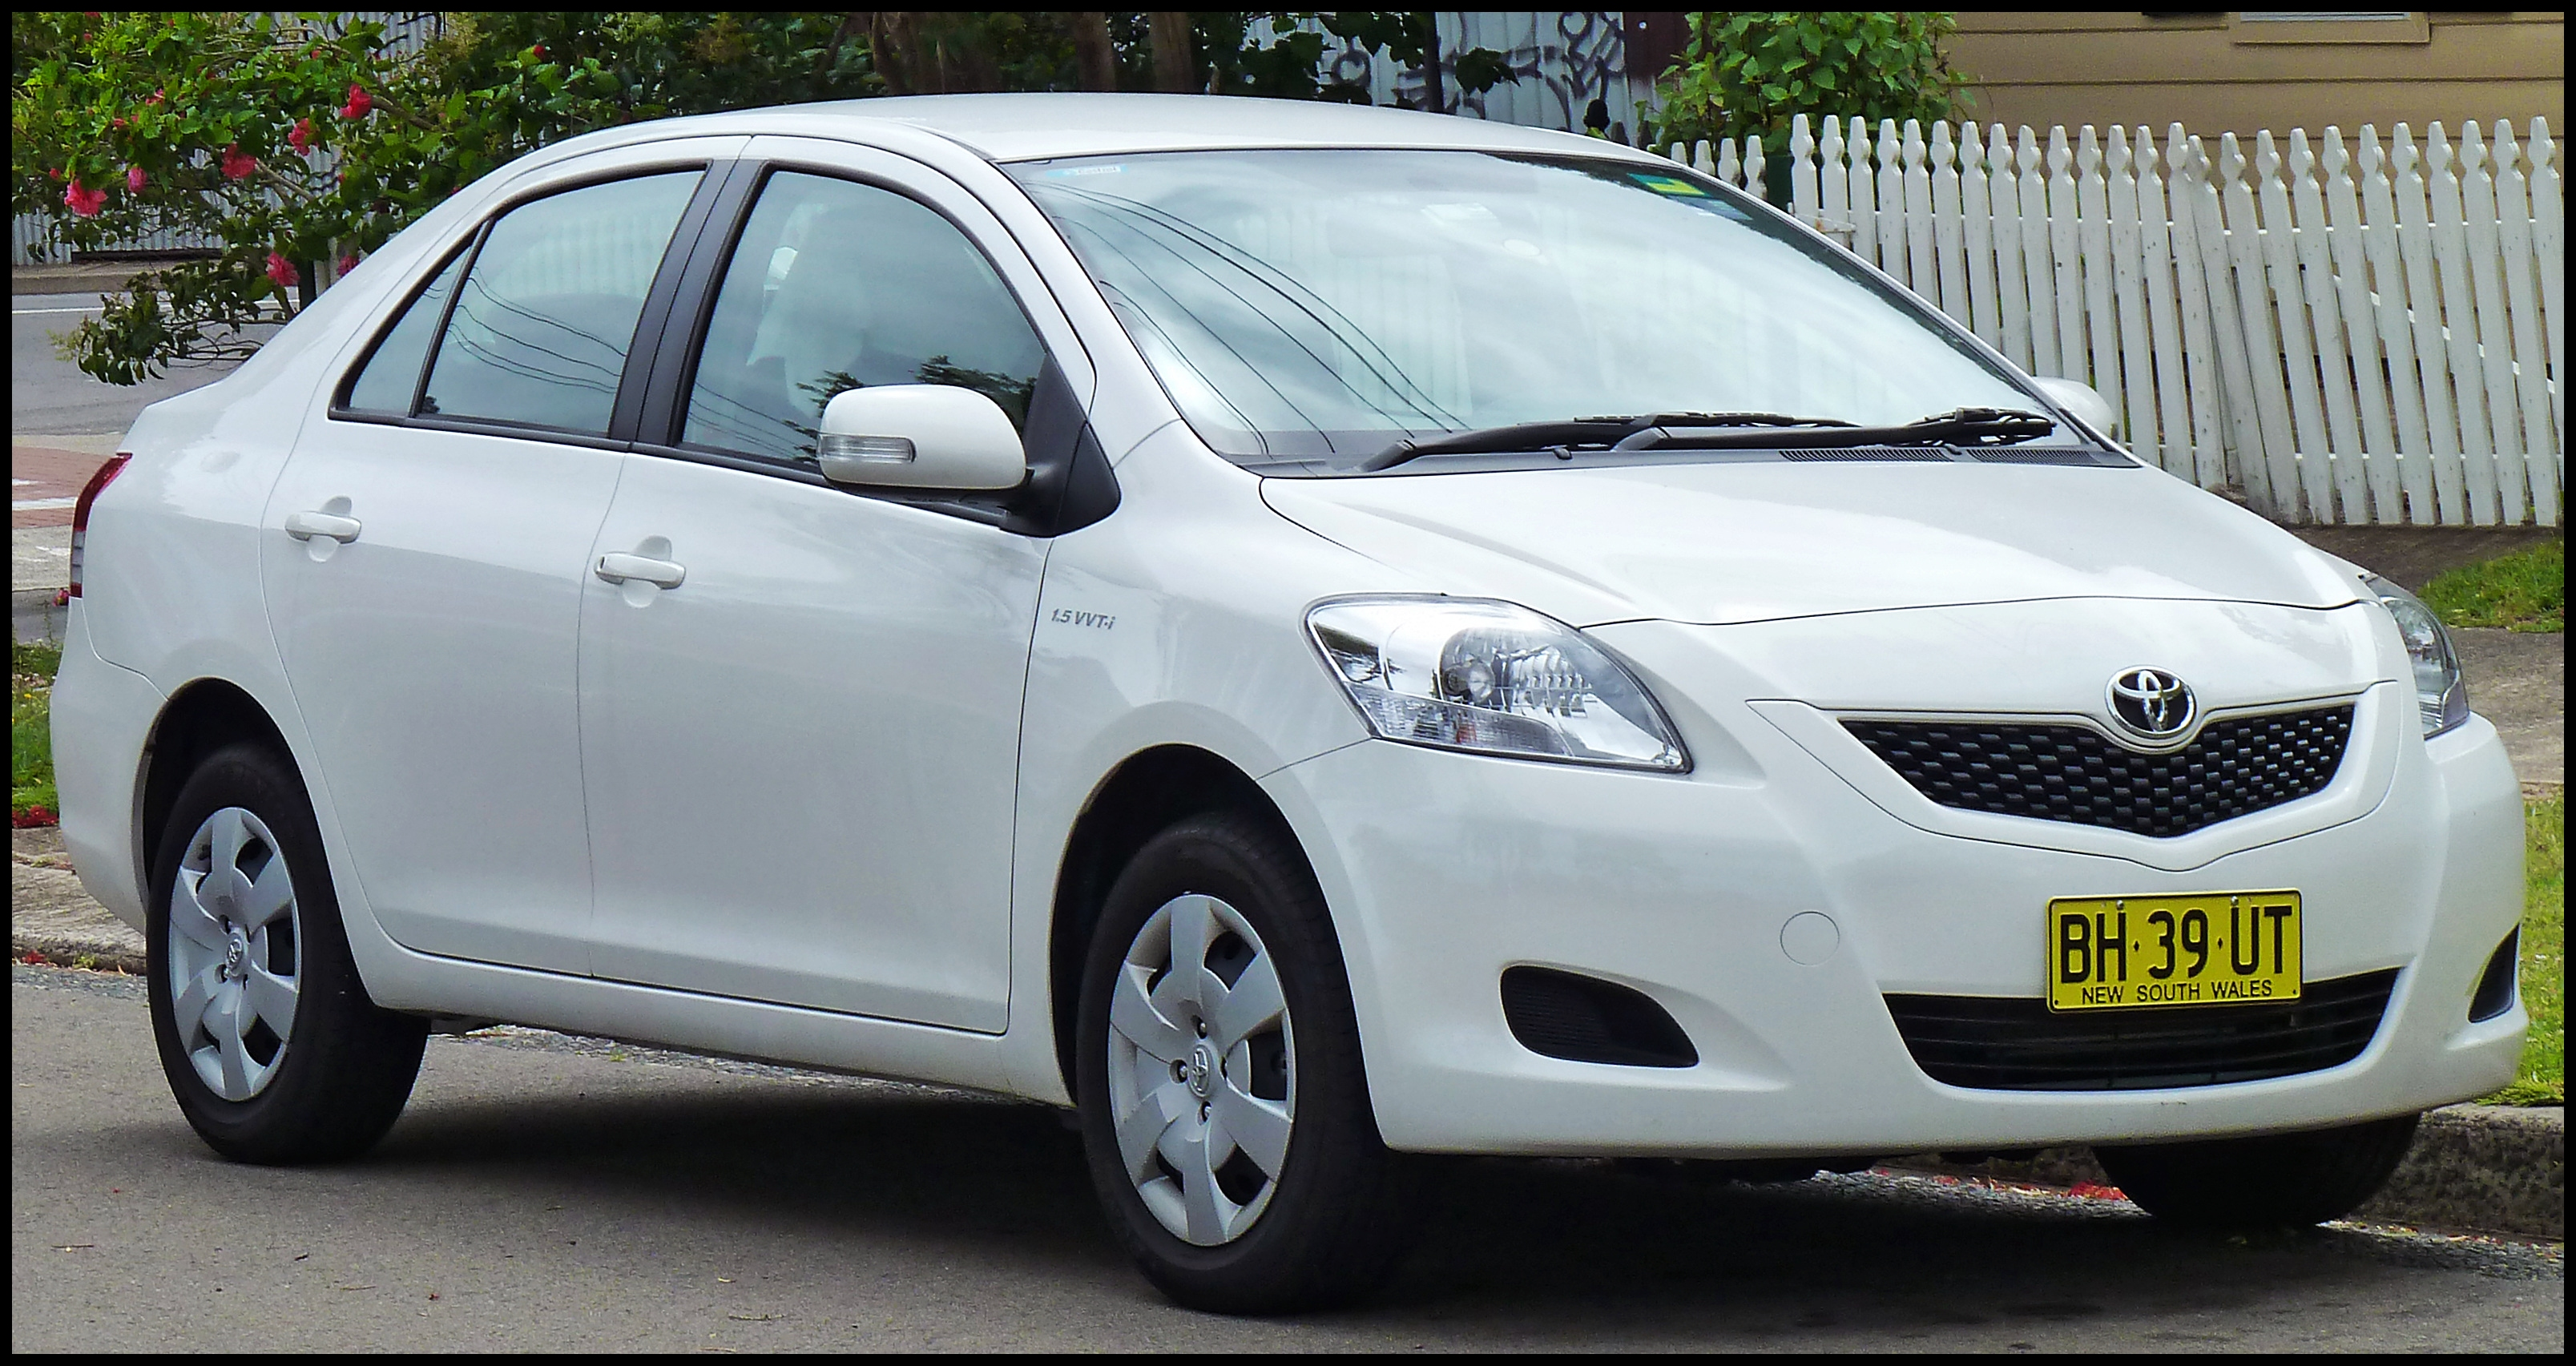 Hot 2008 toyota Yaris Sedan Xp9 – Information and Specs New Interior